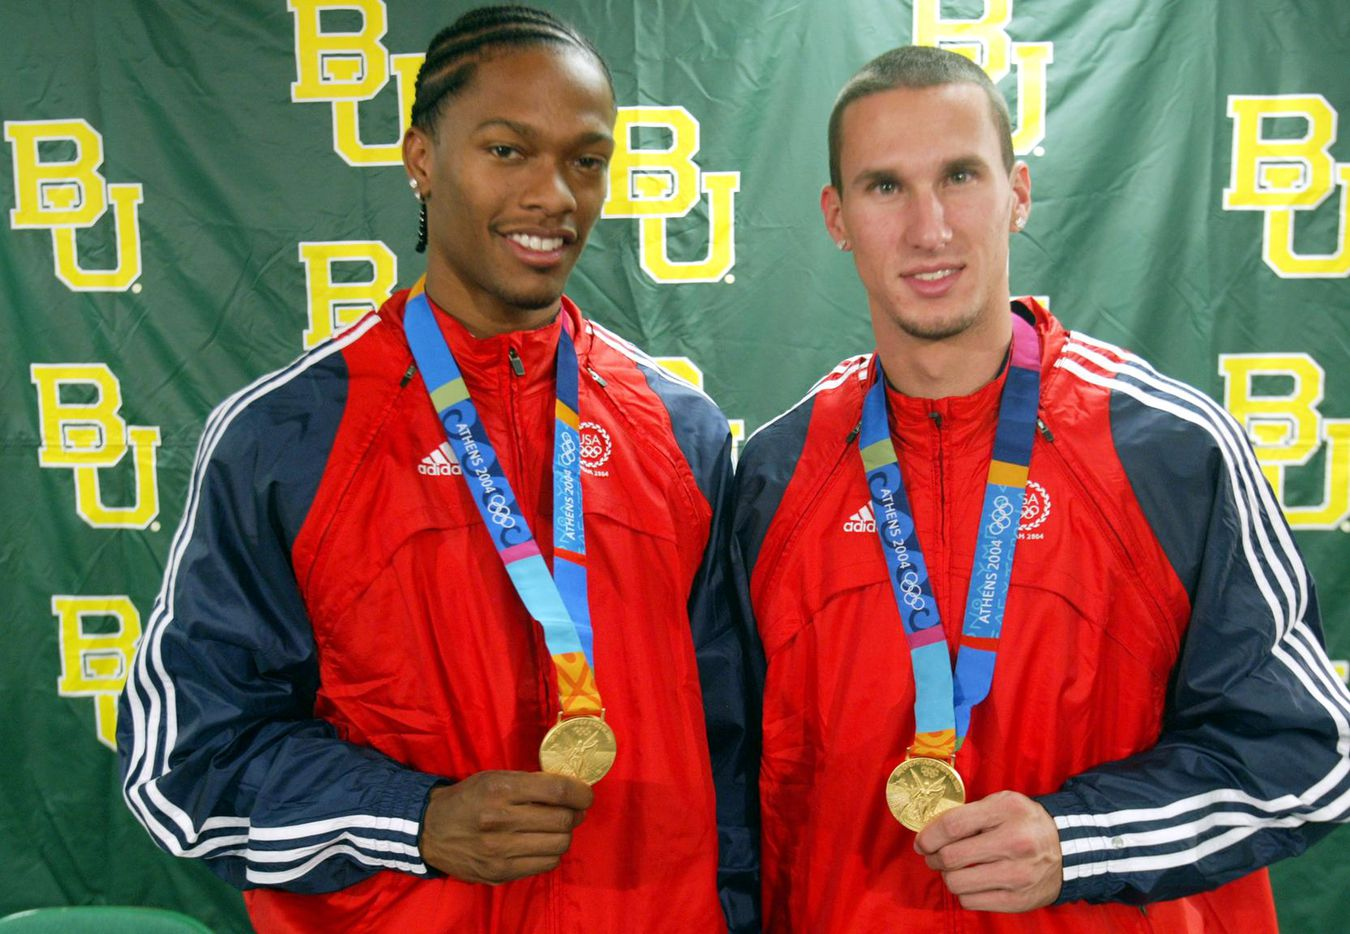 From 2004: Baylor senior Darold Williamson, left, and junior Jeremy Wariner, right, pose with the gold medals they won  at the Athens Olympics.  Wariner won gold in the 400 meter race and both Wariner and Williamson won gold as part of the 4x400 relay team.  Baylor coach Clyde Hart helped train them for the events.